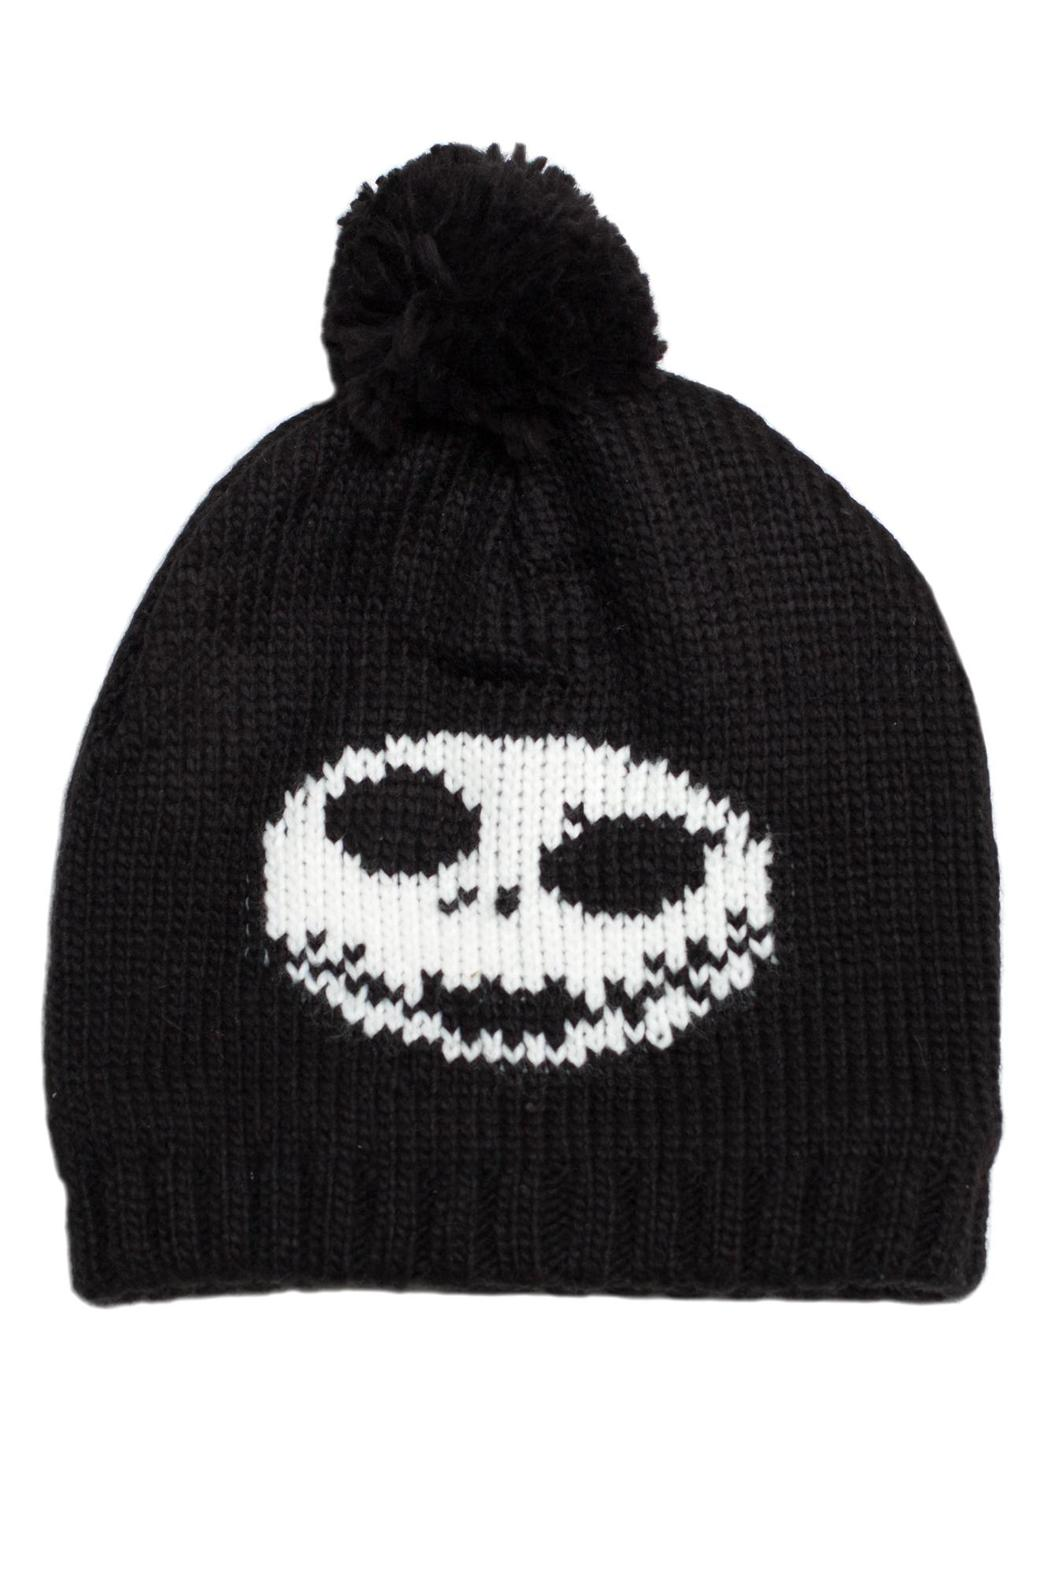 9efc162535e4f Disney Jack Skellington Beanie from Philadelphia by May 23 — Shoptiques